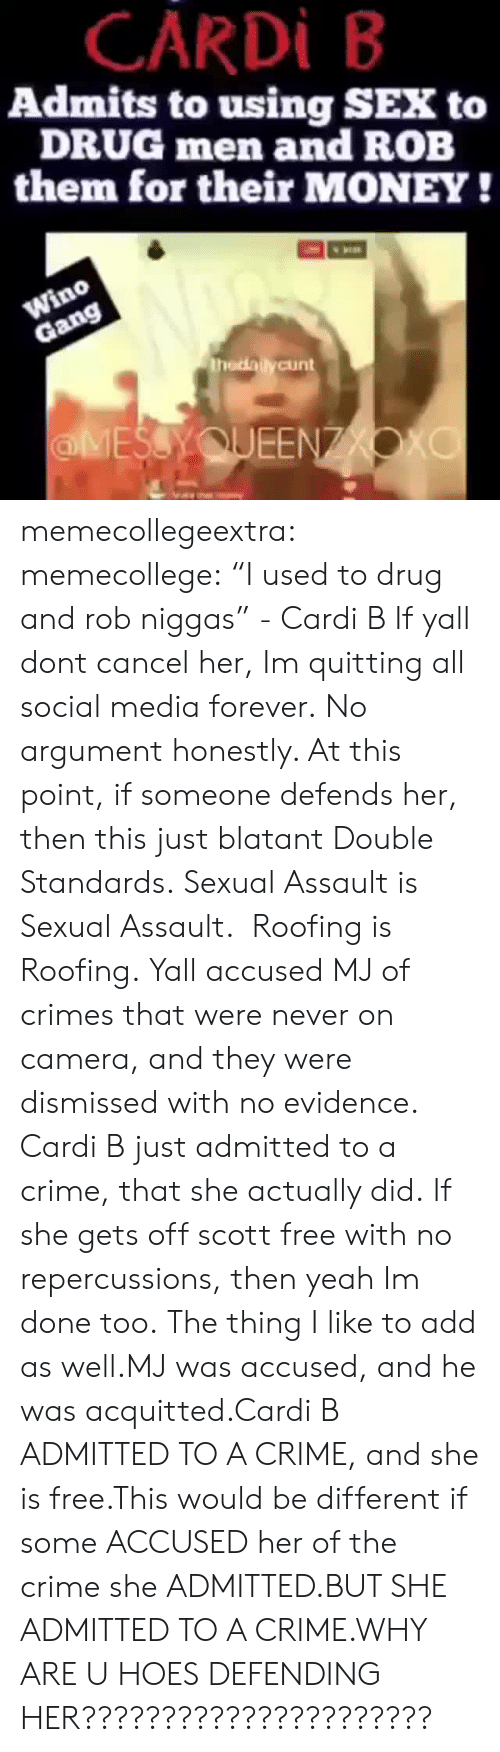 """Crime, Hoes, and Money: CARDİ B  Admits to using SEX to  DRUG men and ROB  them for their MONEY!  thedailycunt  ЕЕ memecollegeextra: memecollege:  """"I used to drug and rob niggas"""" - Cardi B If yall dont cancel her, Im quitting all social media forever.  No argument honestly. At this point, if someone defends her, then this just blatant Double Standards. Sexual Assault is Sexual Assault. Roofing is Roofing. Yall accused MJ of crimes that were never on camera, and they were dismissed with no evidence. Cardi B just admitted to a crime, that she actually did. If she gets off scott free with no repercussions, then yeah Im done too.  The thing I like to add as well.MJ was accused, and he was acquitted.Cardi B ADMITTED TO A CRIME, and she is free.This would be different if some ACCUSED her of the crime she ADMITTED.BUT SHE ADMITTED TO A CRIME.WHY ARE U HOES DEFENDING HER??????????????????????"""